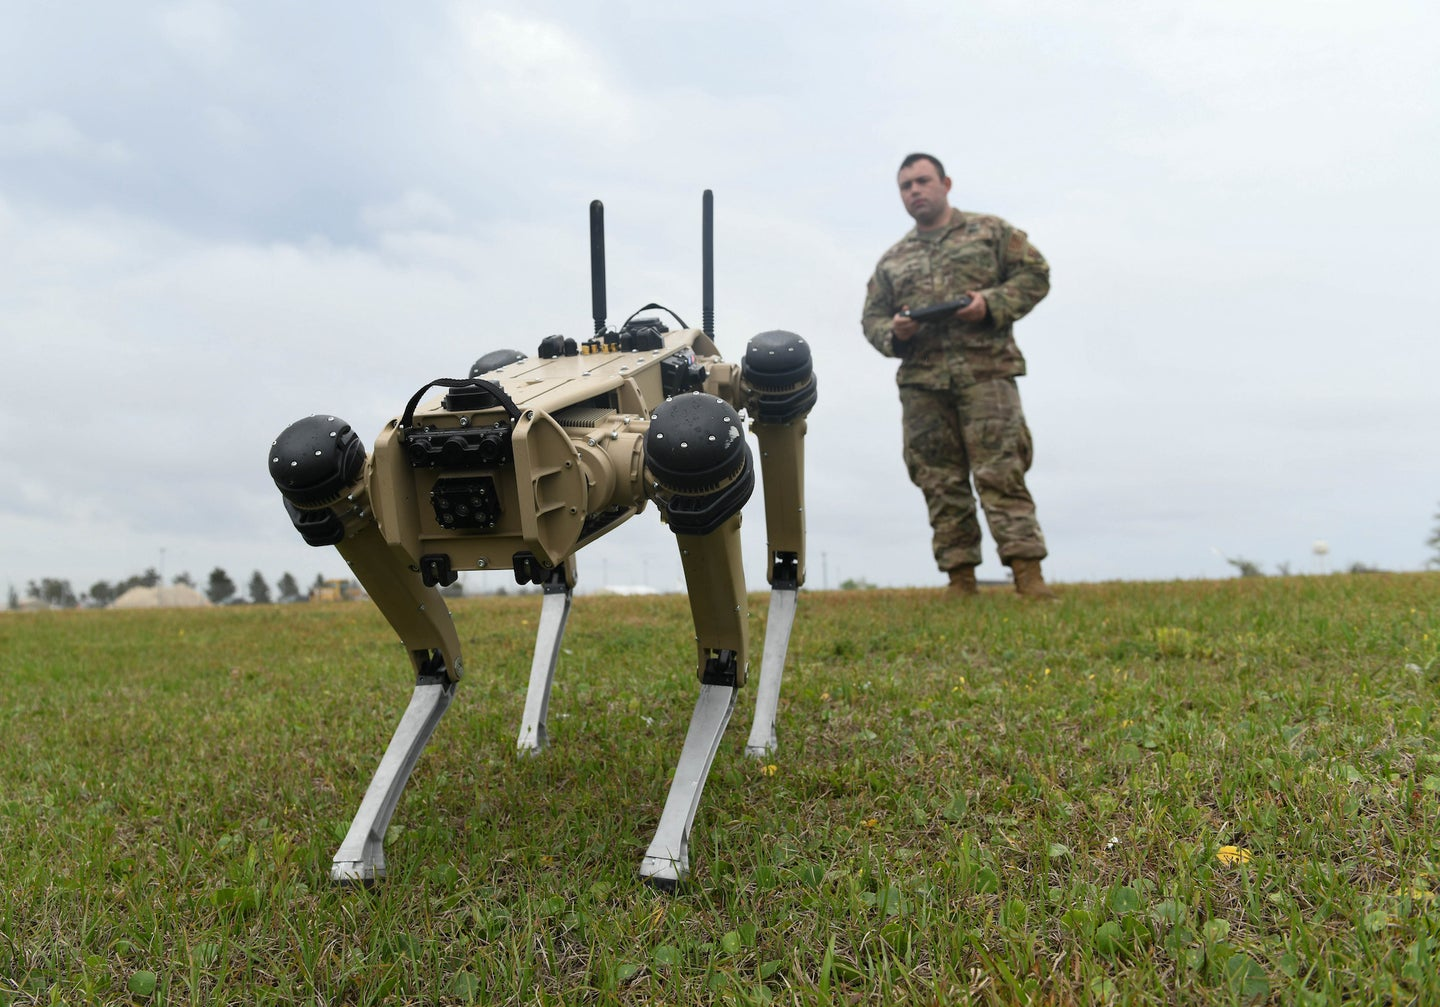 A robotic dog and its handler.